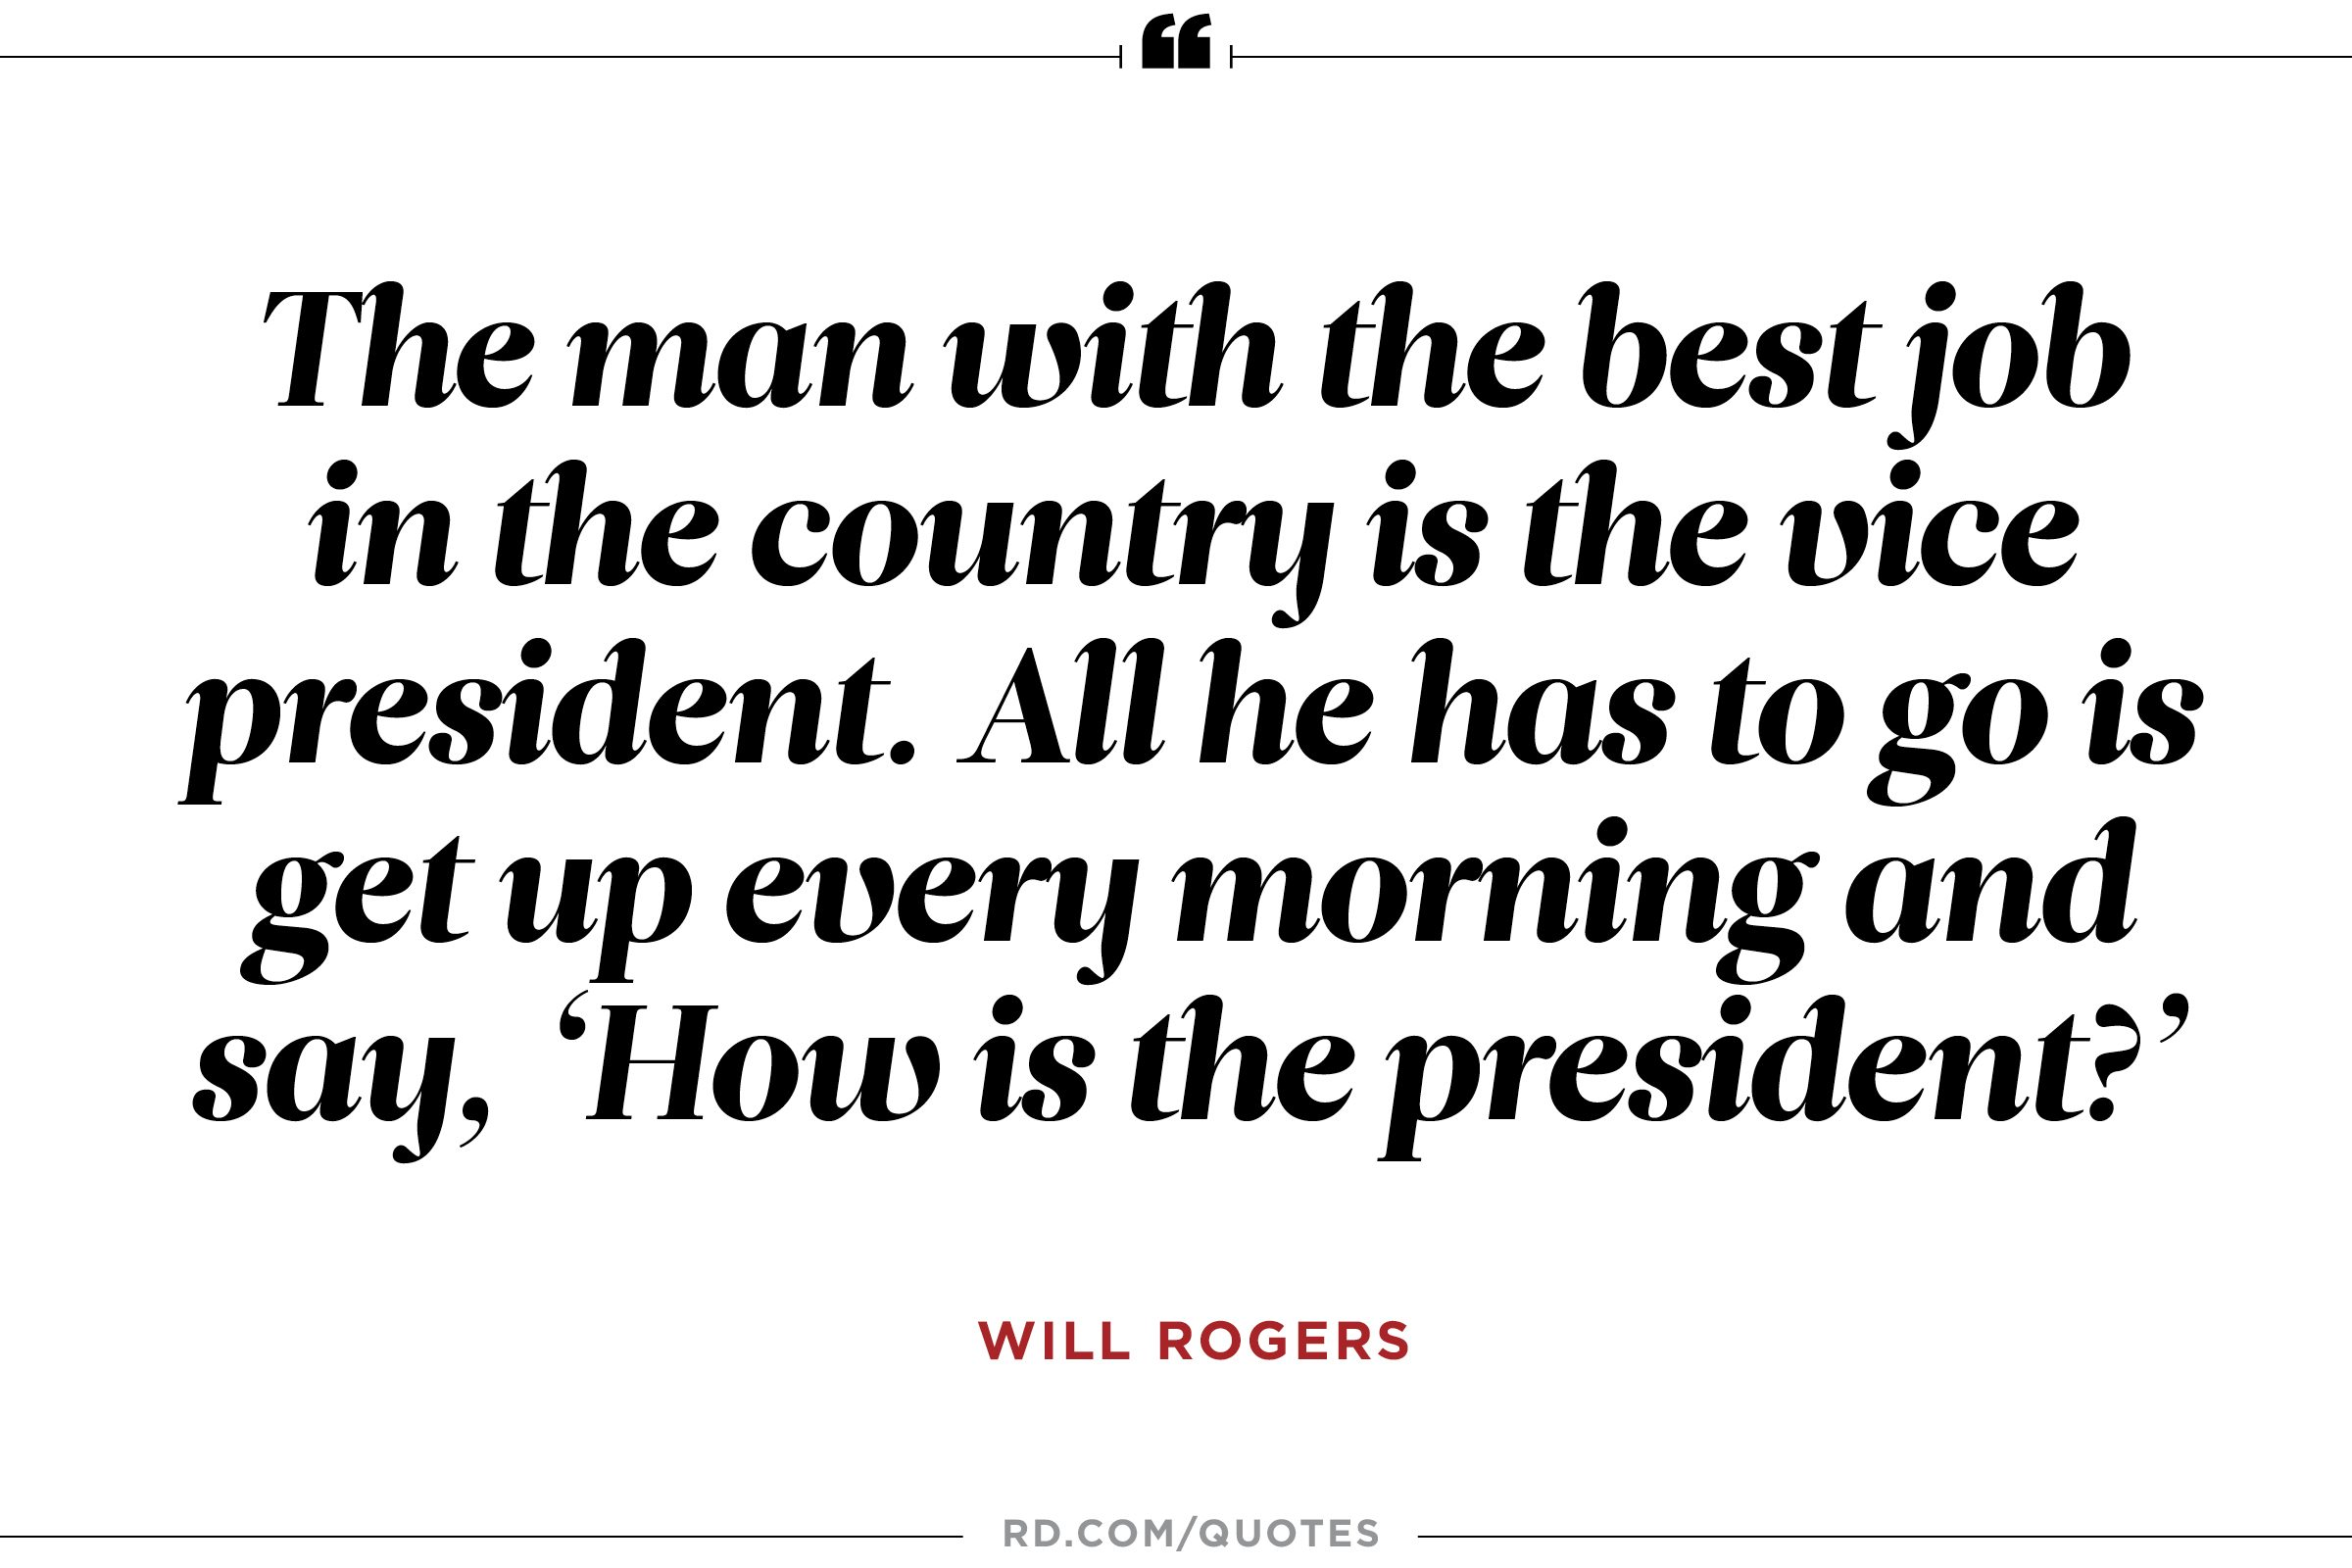 Wise Quotes 10 Wise Quotes From Will Rogers  Reader's Digest